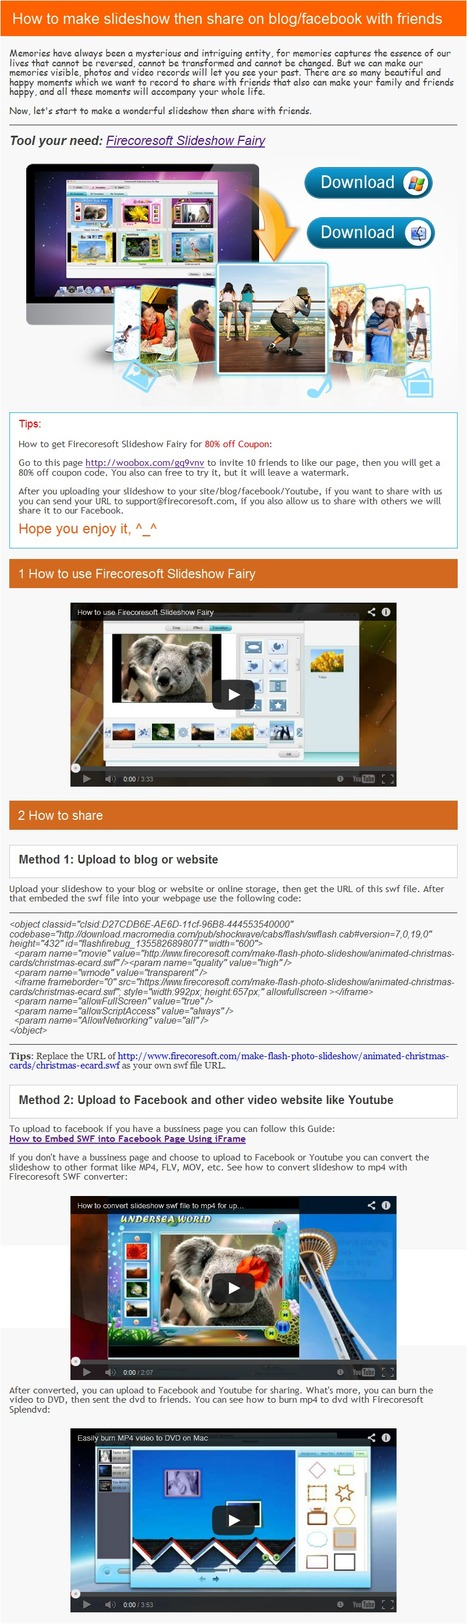 How to make slideshow then share on blog/facebook with friends | guide | Scoop.it